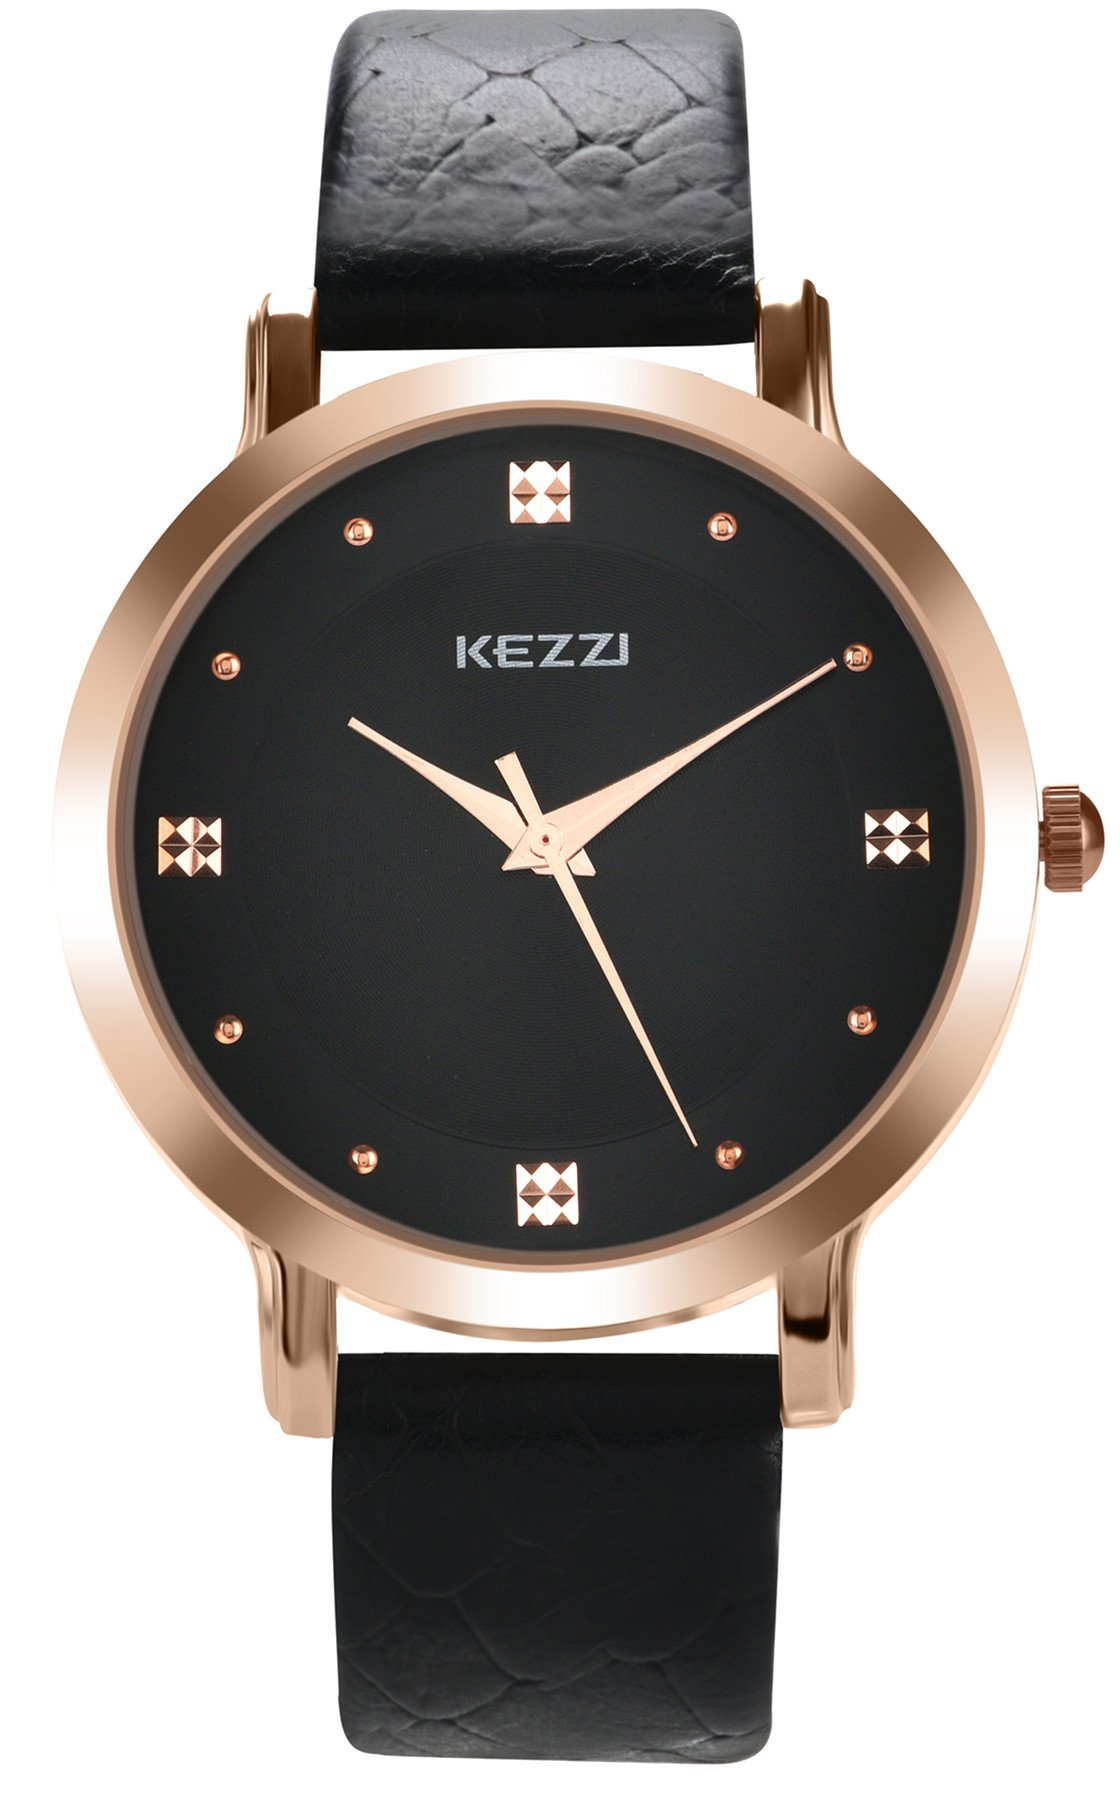 Mens Leather Watch Classic Bussiness Casual Quartz Analog Wrist Watches Simple Arabic Numeral Calendar Date Male Dress Wristwatch Black Strap Black Dial Timepiece 99 Ft Waterproof